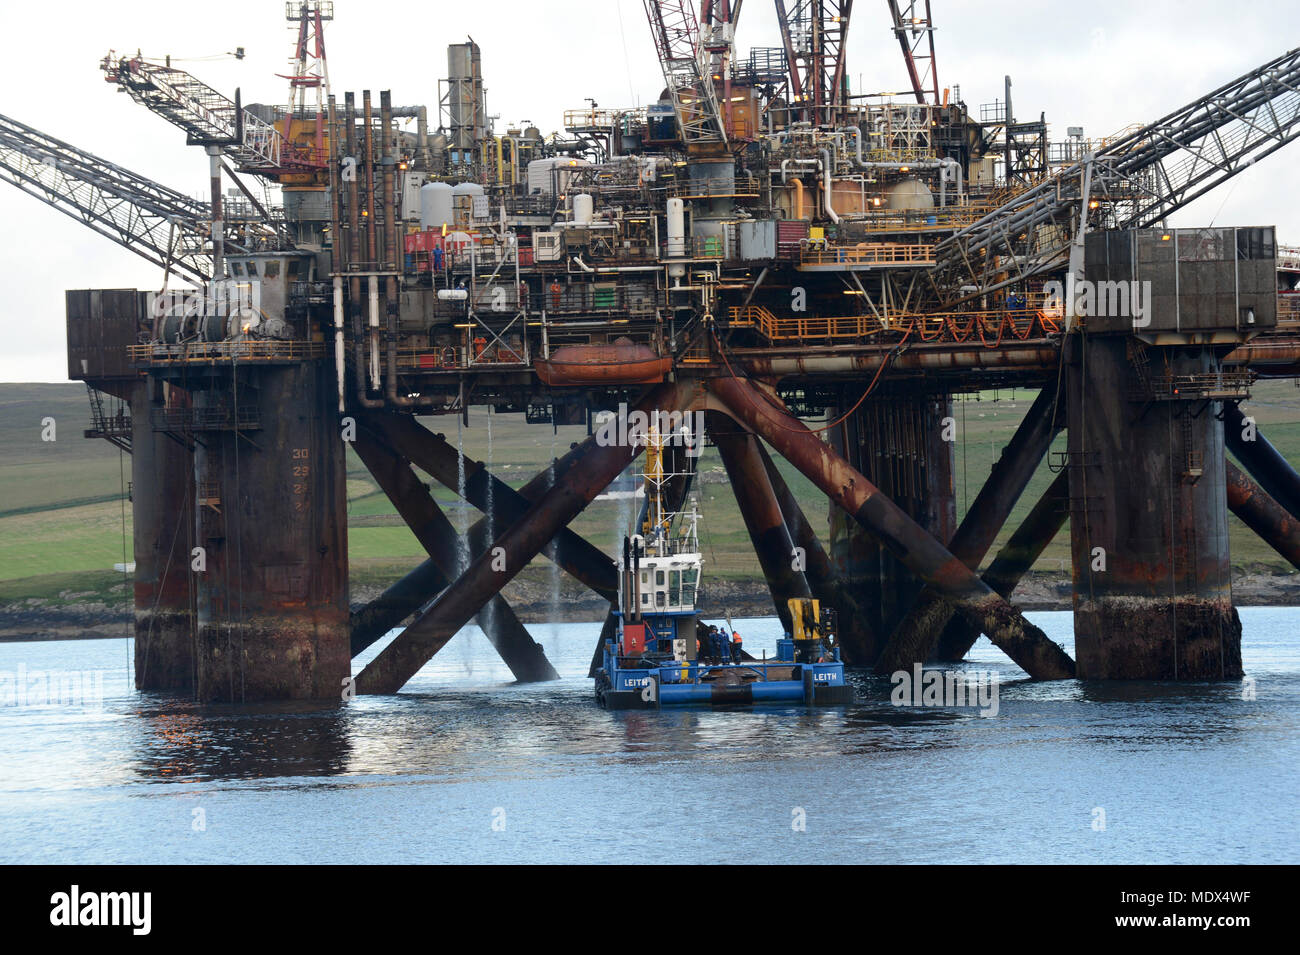 Buchan Alpha oil rig coming into to Lerwick Shetland for decommissioning to be cut up for scrap metal and be recycled - Stock Image